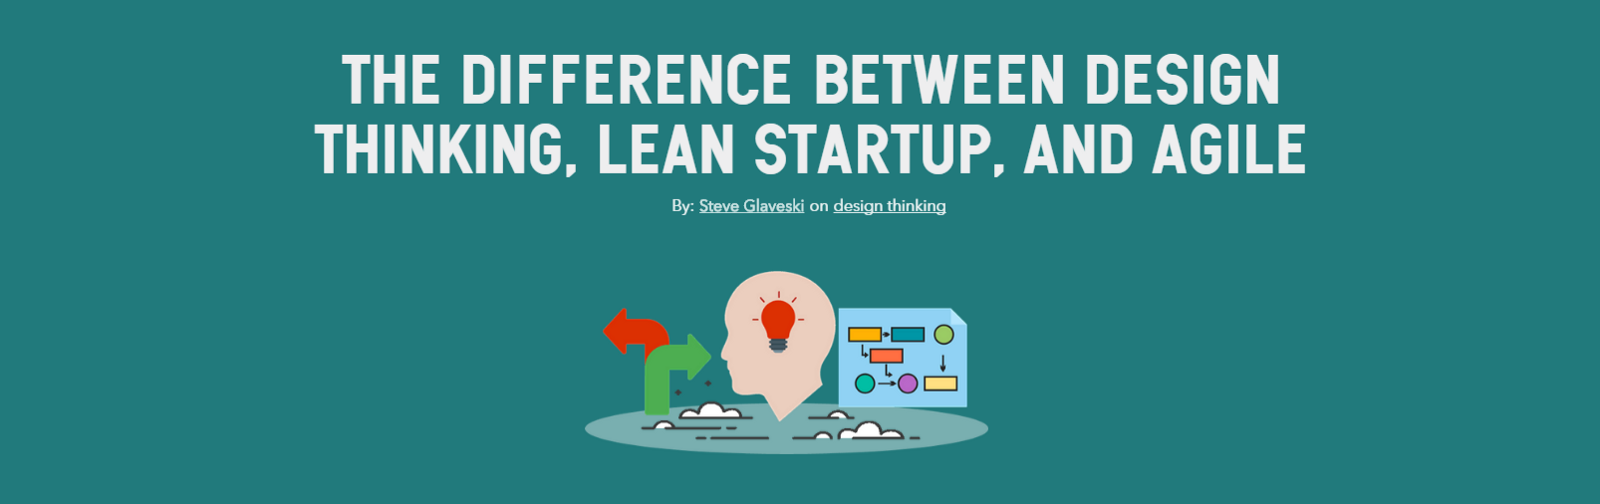 Design thinking Vs. Lean start-up Vs. Agile